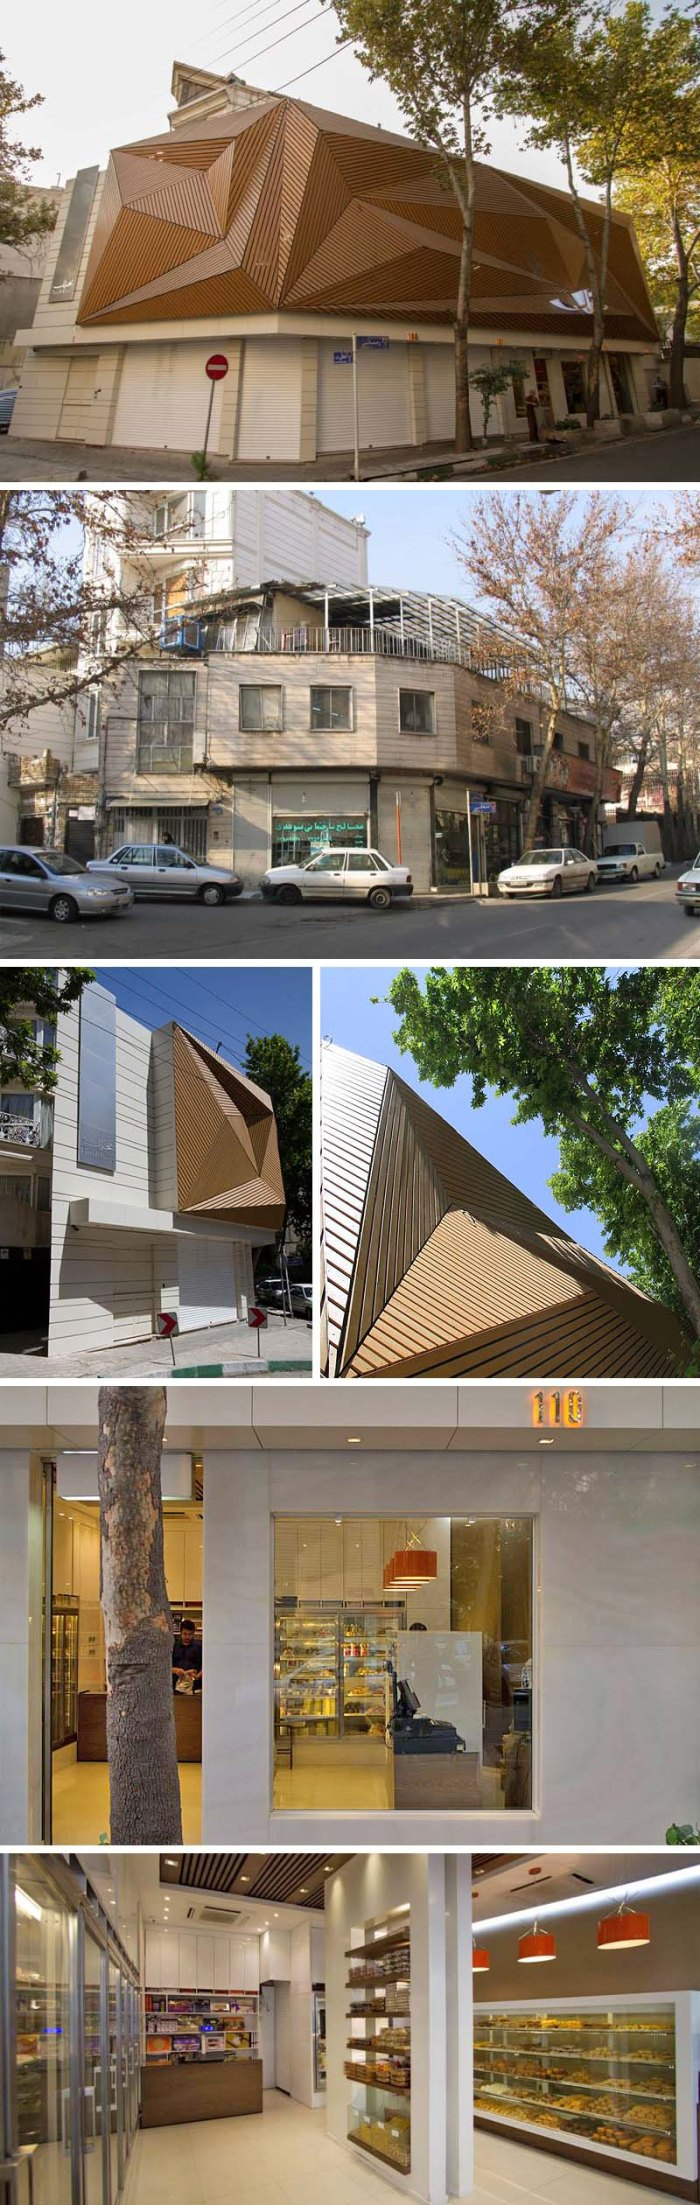 Nakhlak Confectionery, Tehran, Iran. Interesting building renovation with a prismatic facade made of wood